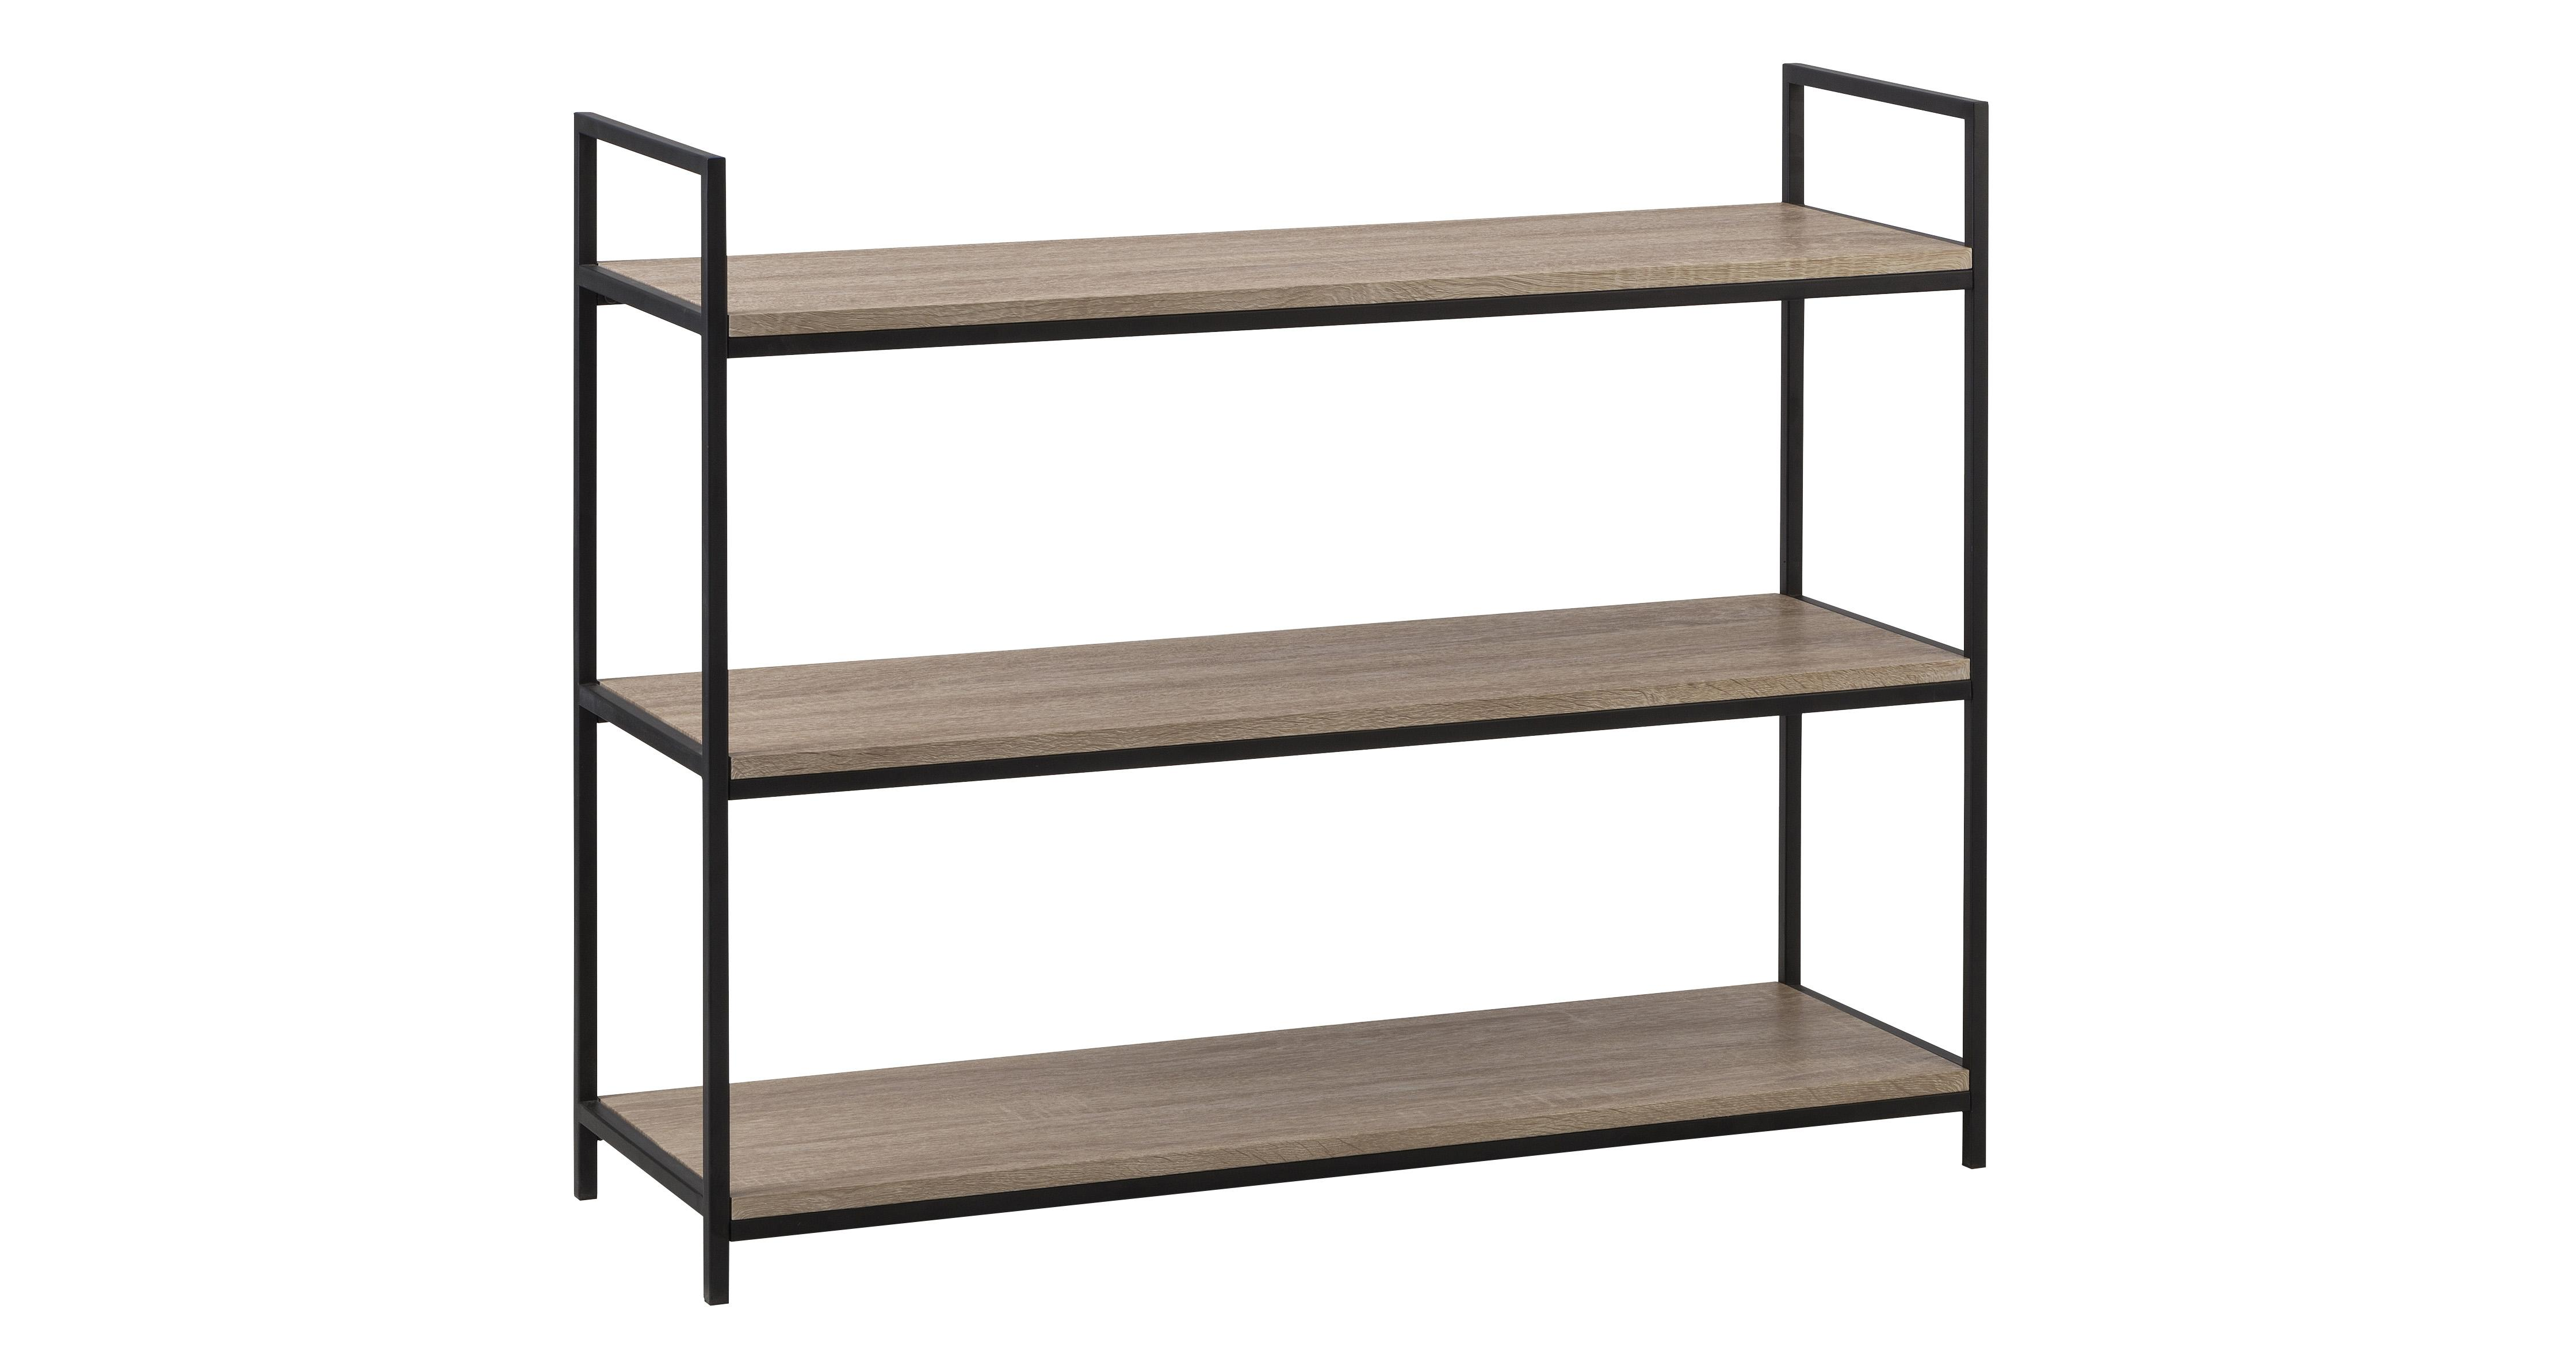 About The Corsica Low Bookcase